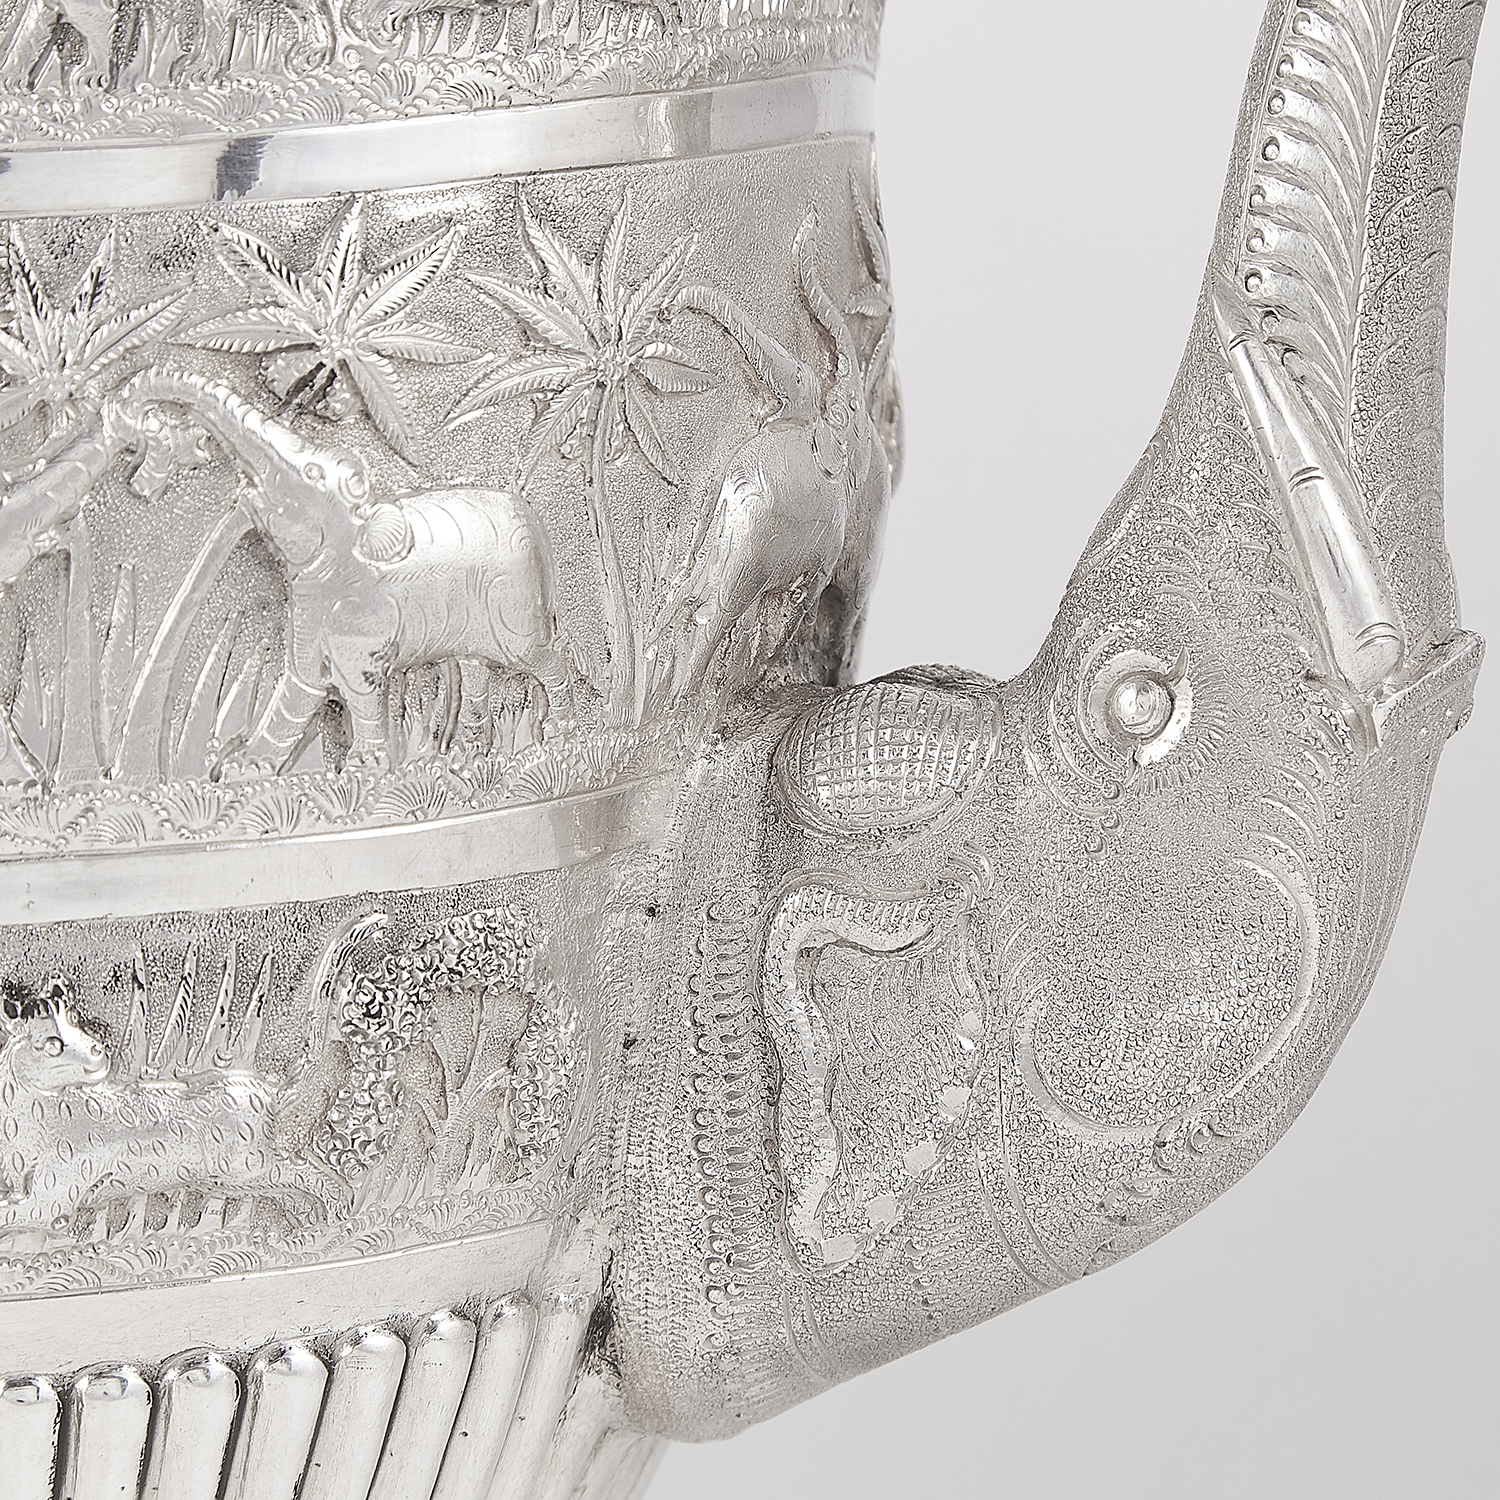 Los 3 - ANTIQUE COLONIAL INDIAN SILVER COFFEE POT, CIRCA 1890 the tapering half fluted body with bands of